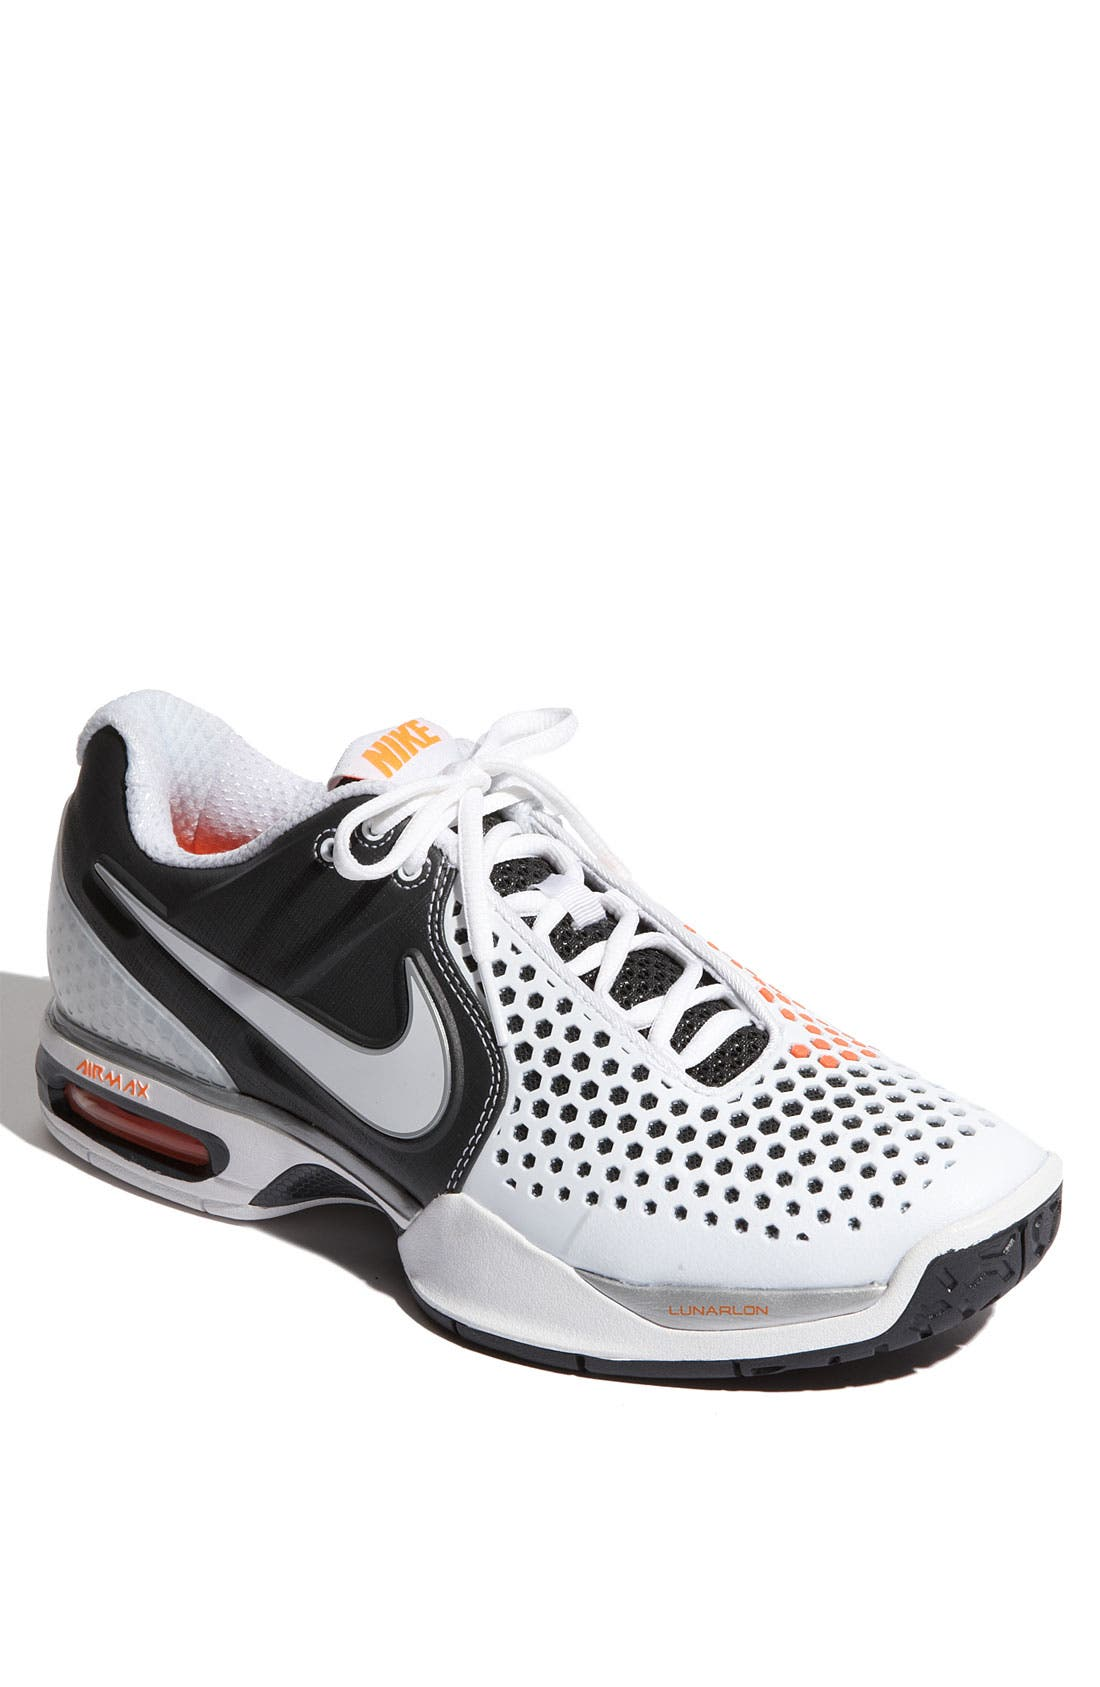 Alternate Image 1 Selected - Nike 'Air Max Court Ballistic 3.3' Tennis Shoe (Men)